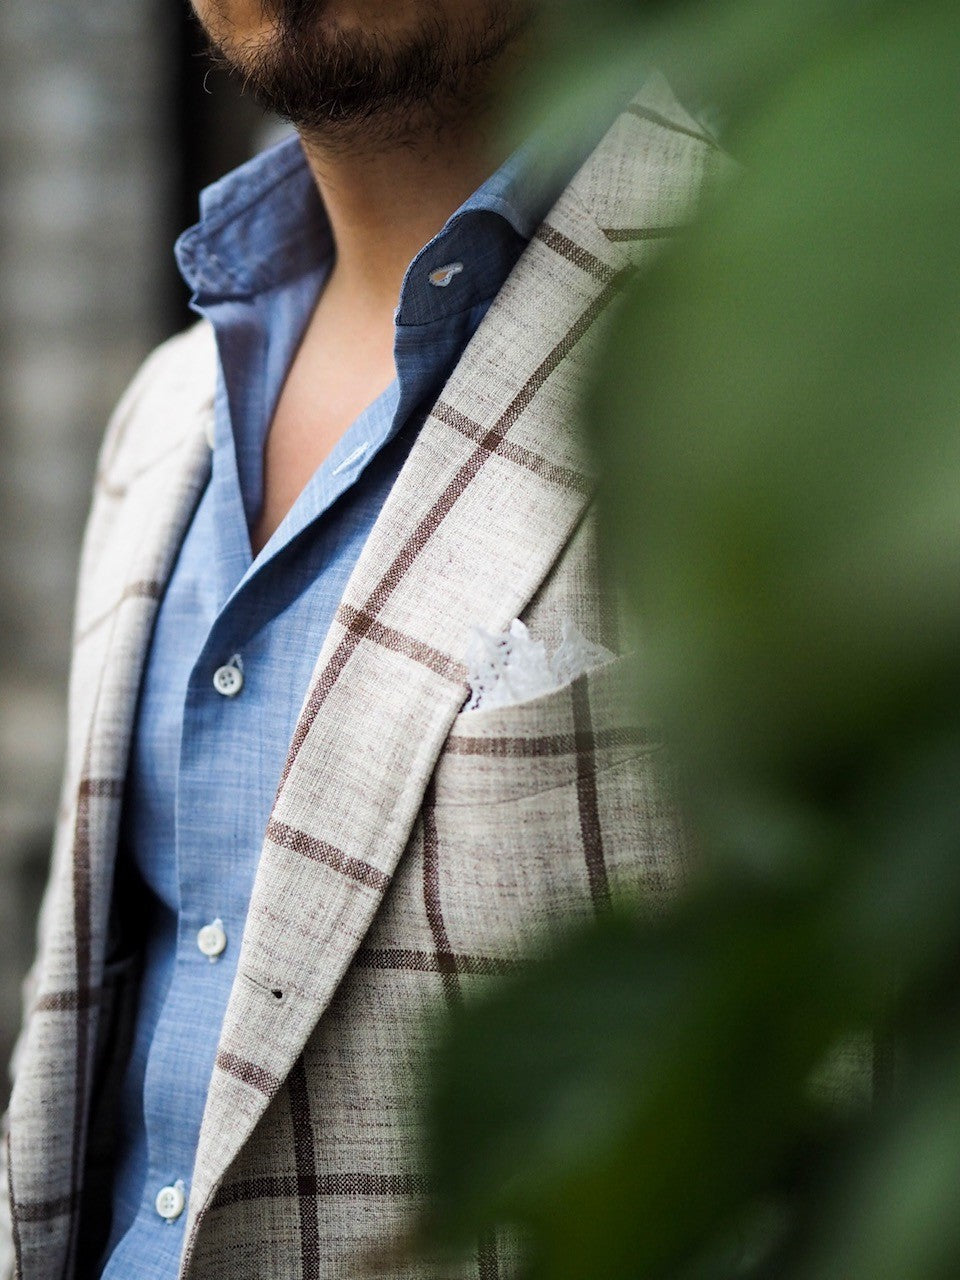 Made-to-measure windowpane suit jacket with chambray shirt